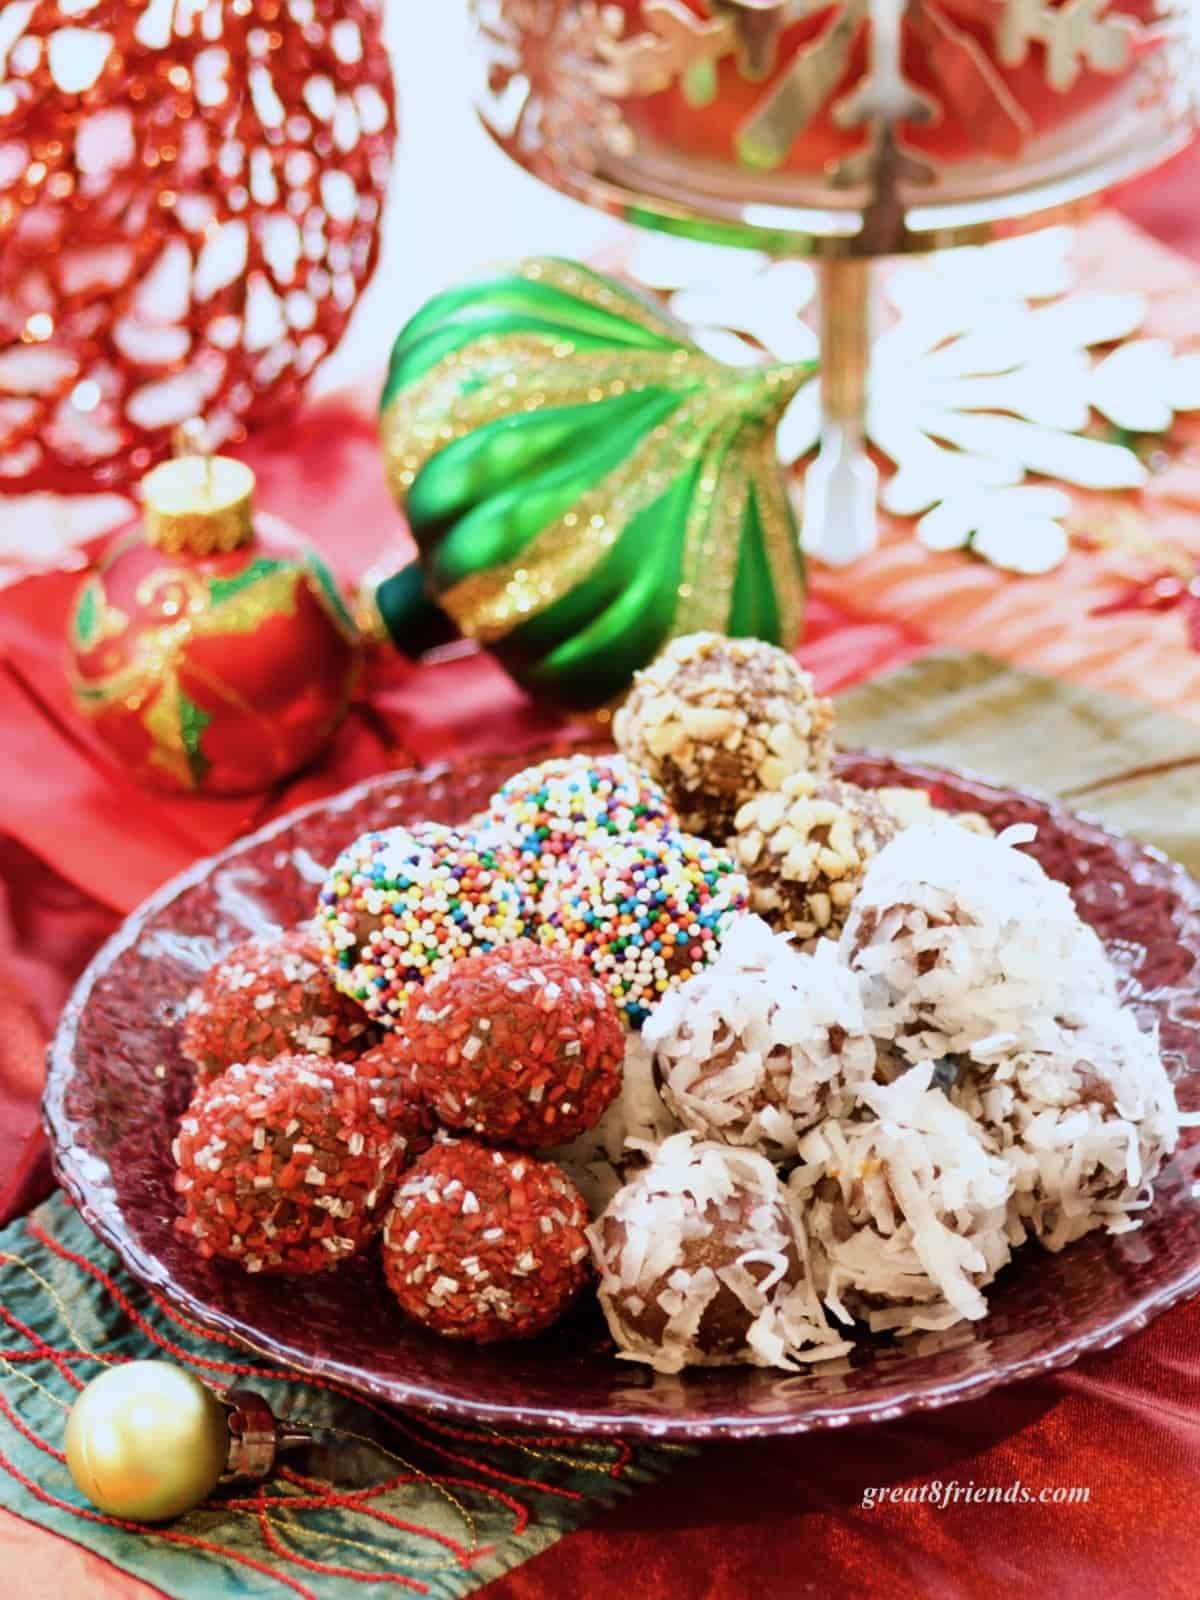 Chocolate truffles rolled in sprinkles and coconut on a Christmas table.